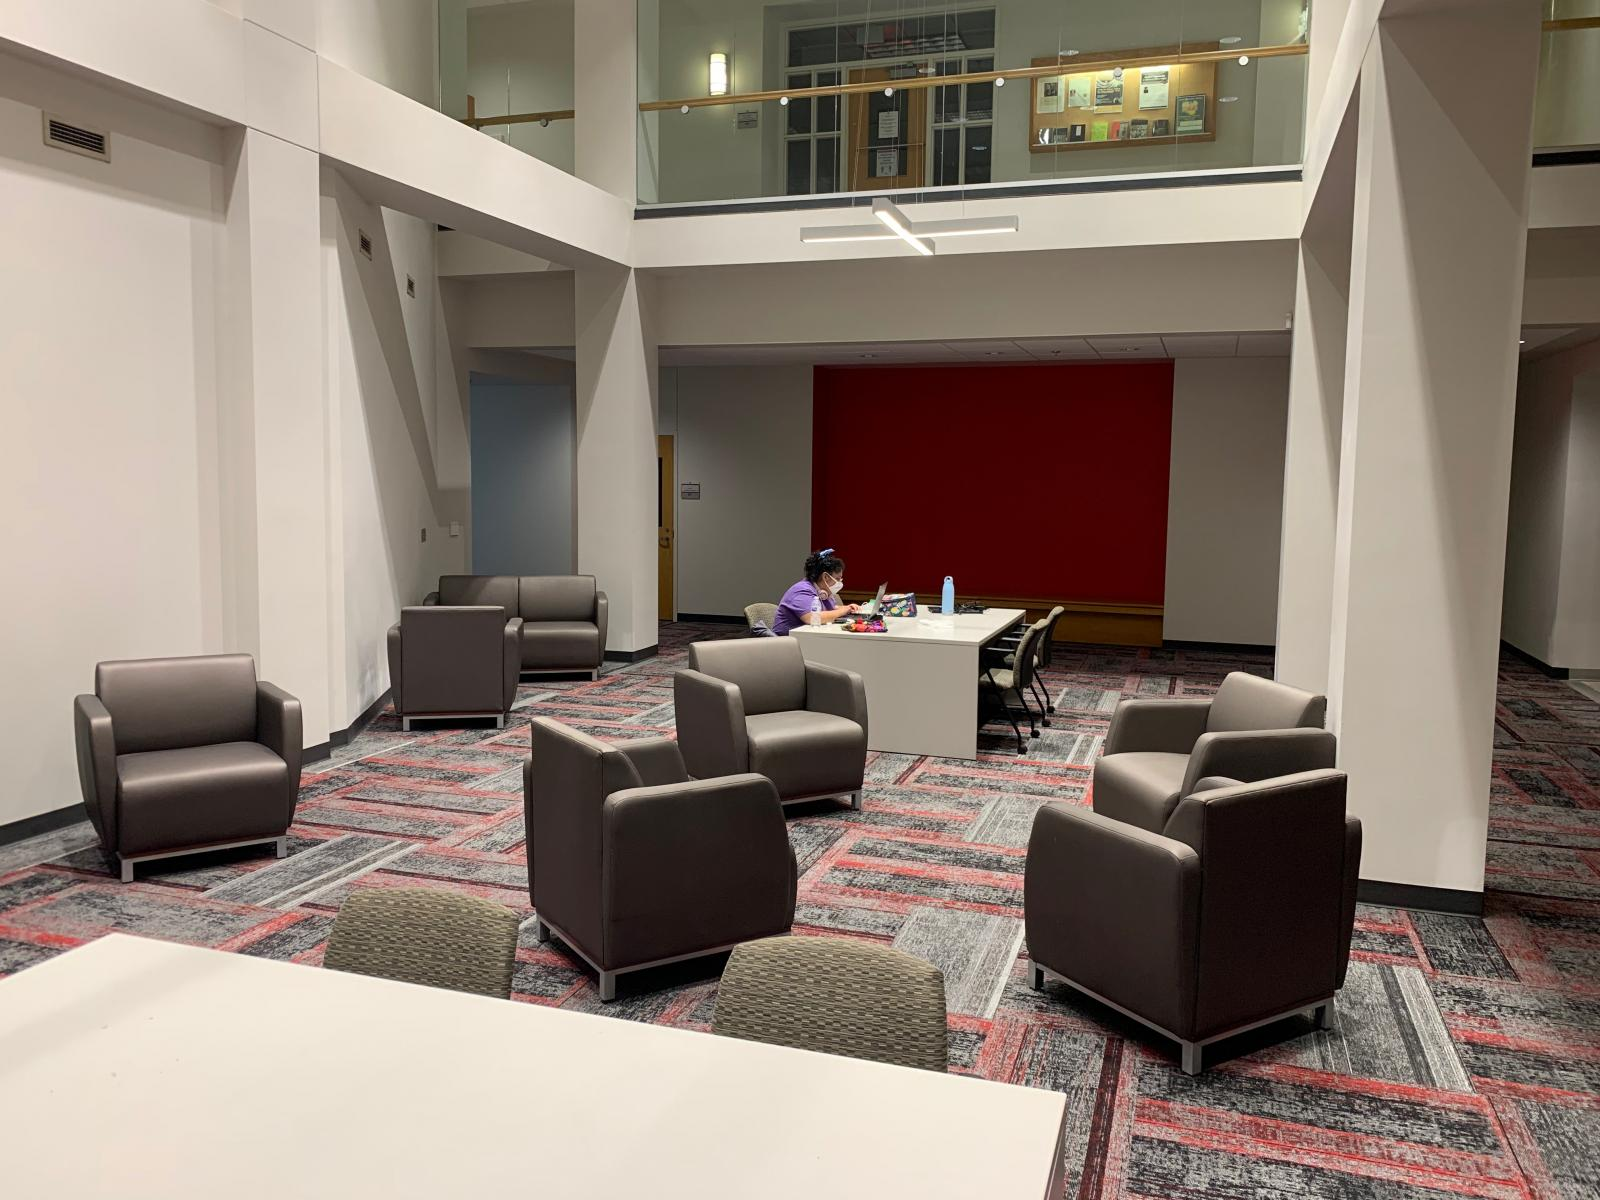 Louise Pound Hall, 2nd level study space and lounge.